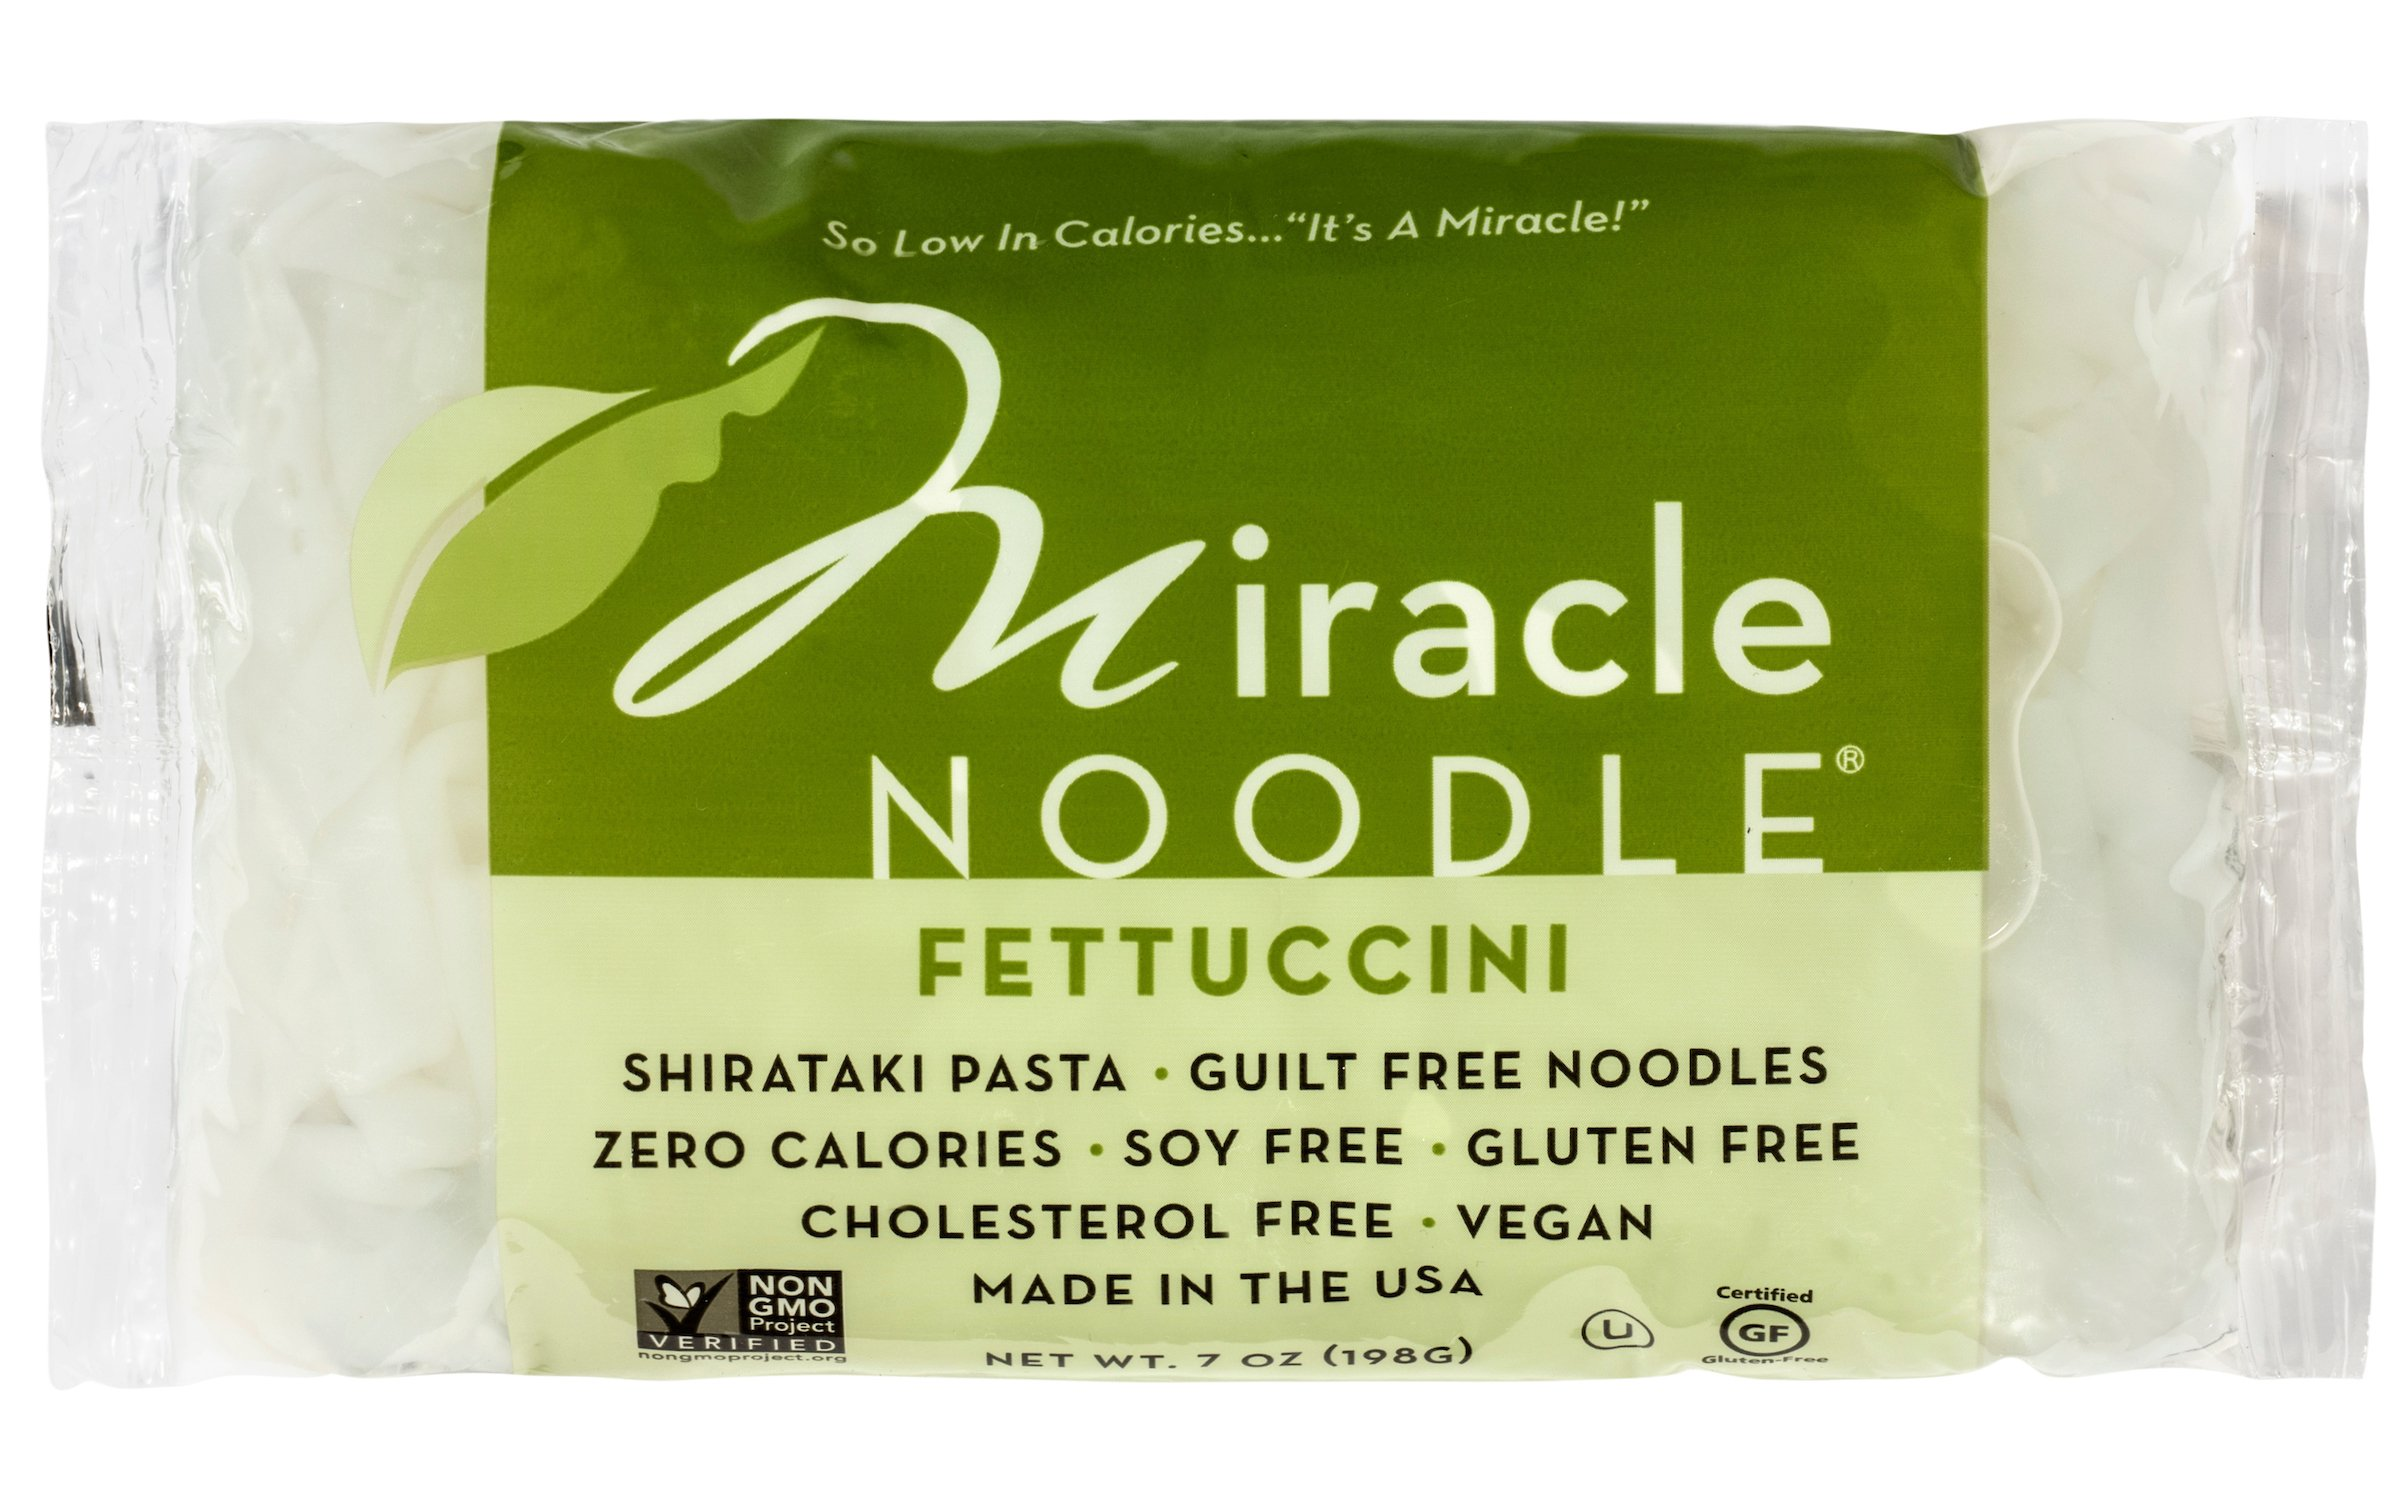 Miracle Noodle Zero Carb, Gluten Free Shirataki Pasta, Fettuccini, 7-Ounce, (Pack of 6)